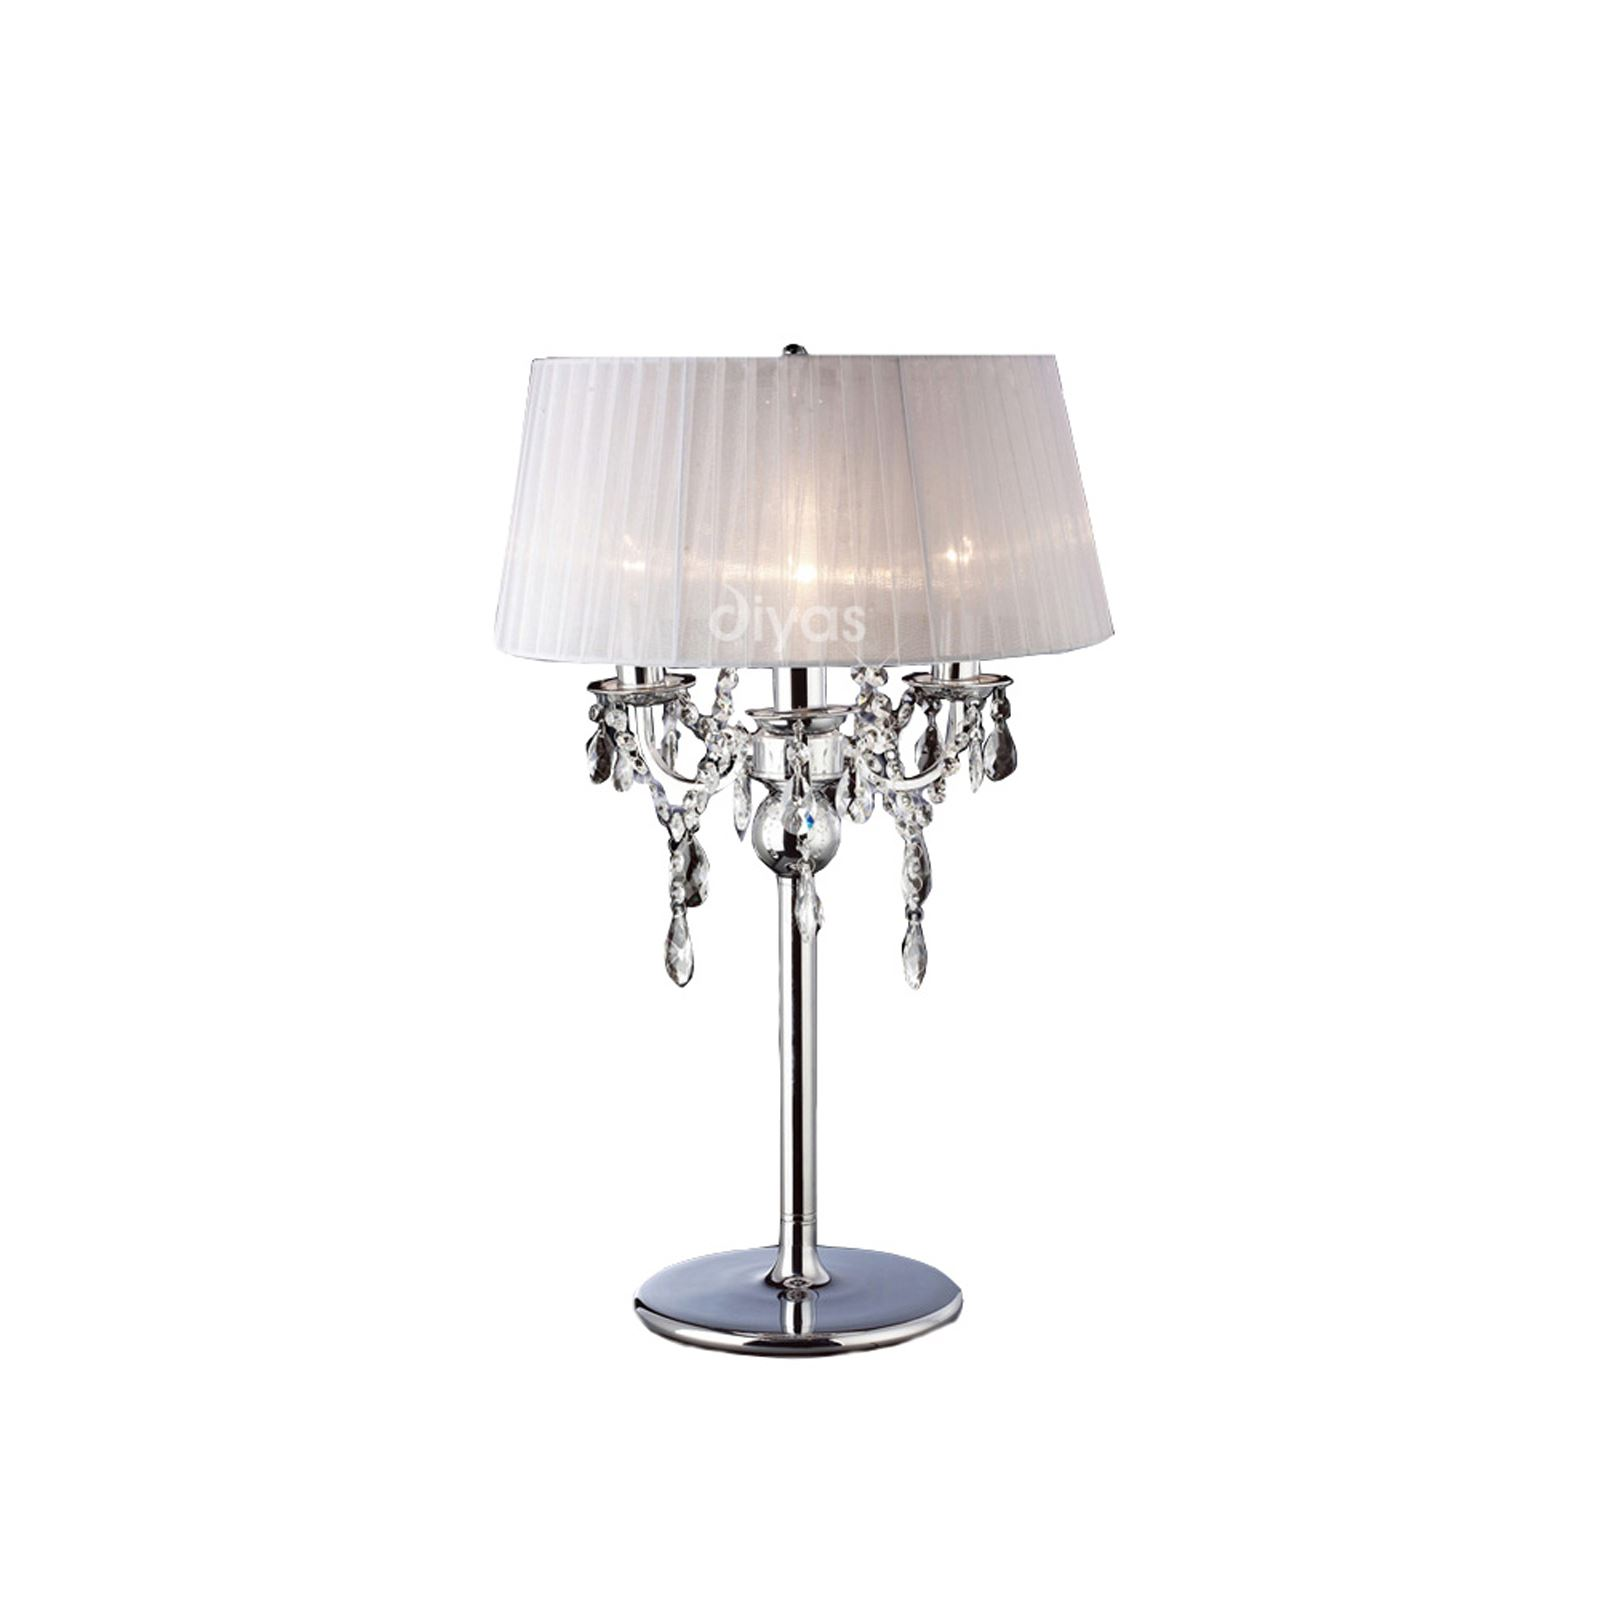 Stylish 3 Light Table Lamp Polished Chrome Finish  With White Shade Crystal Detail